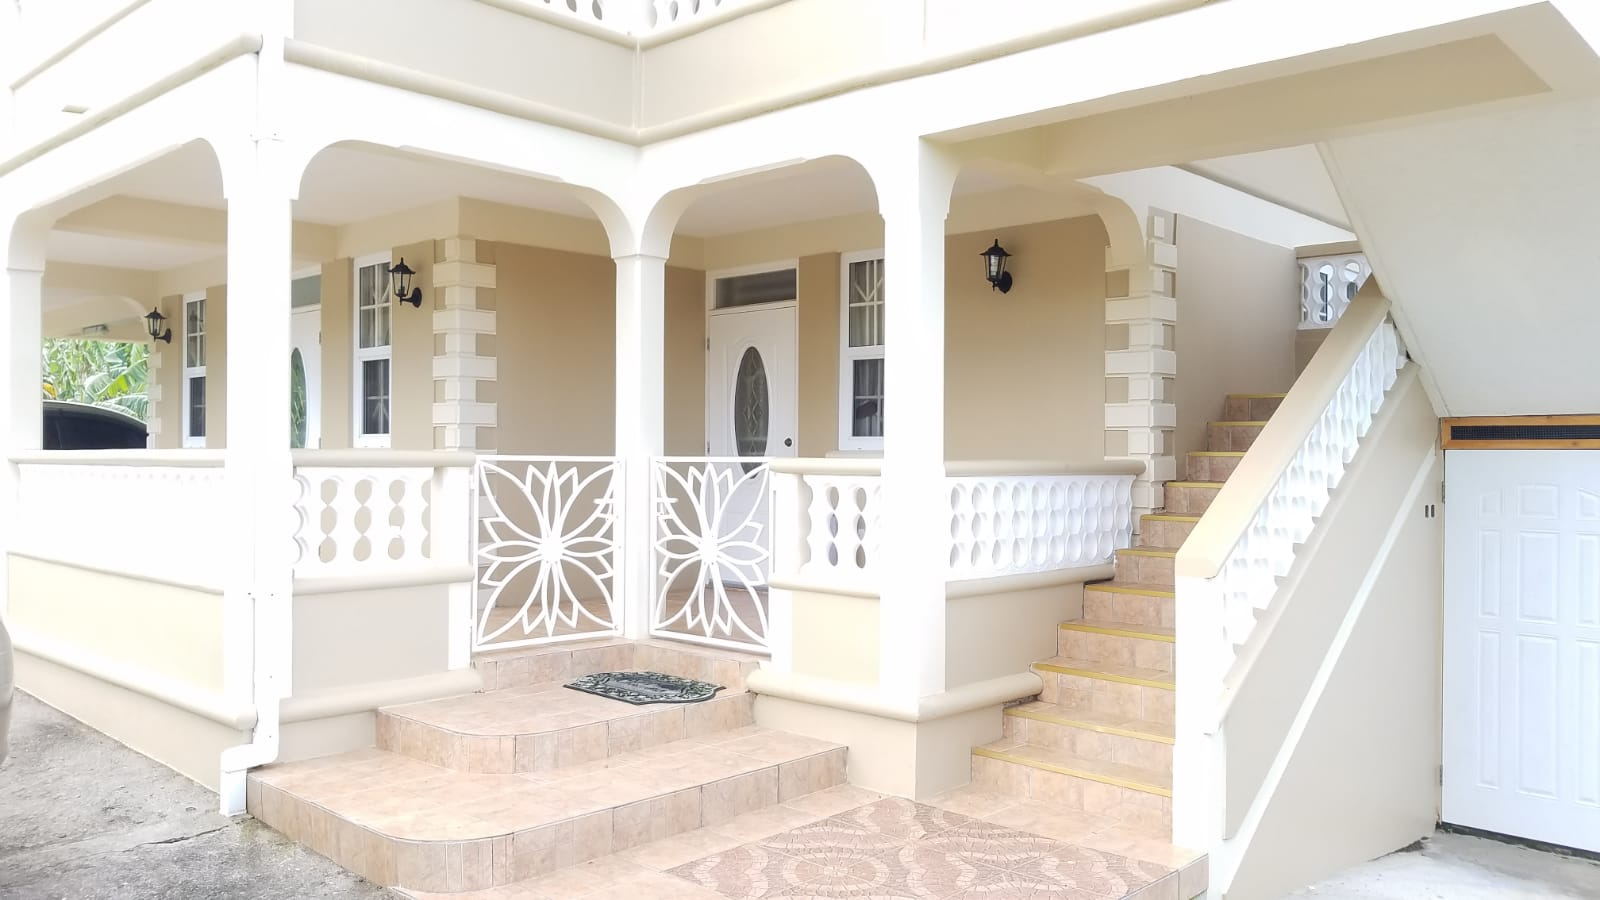 Dominica Real Estate: Building For Sale In Balvine, Picard, Portsmouth